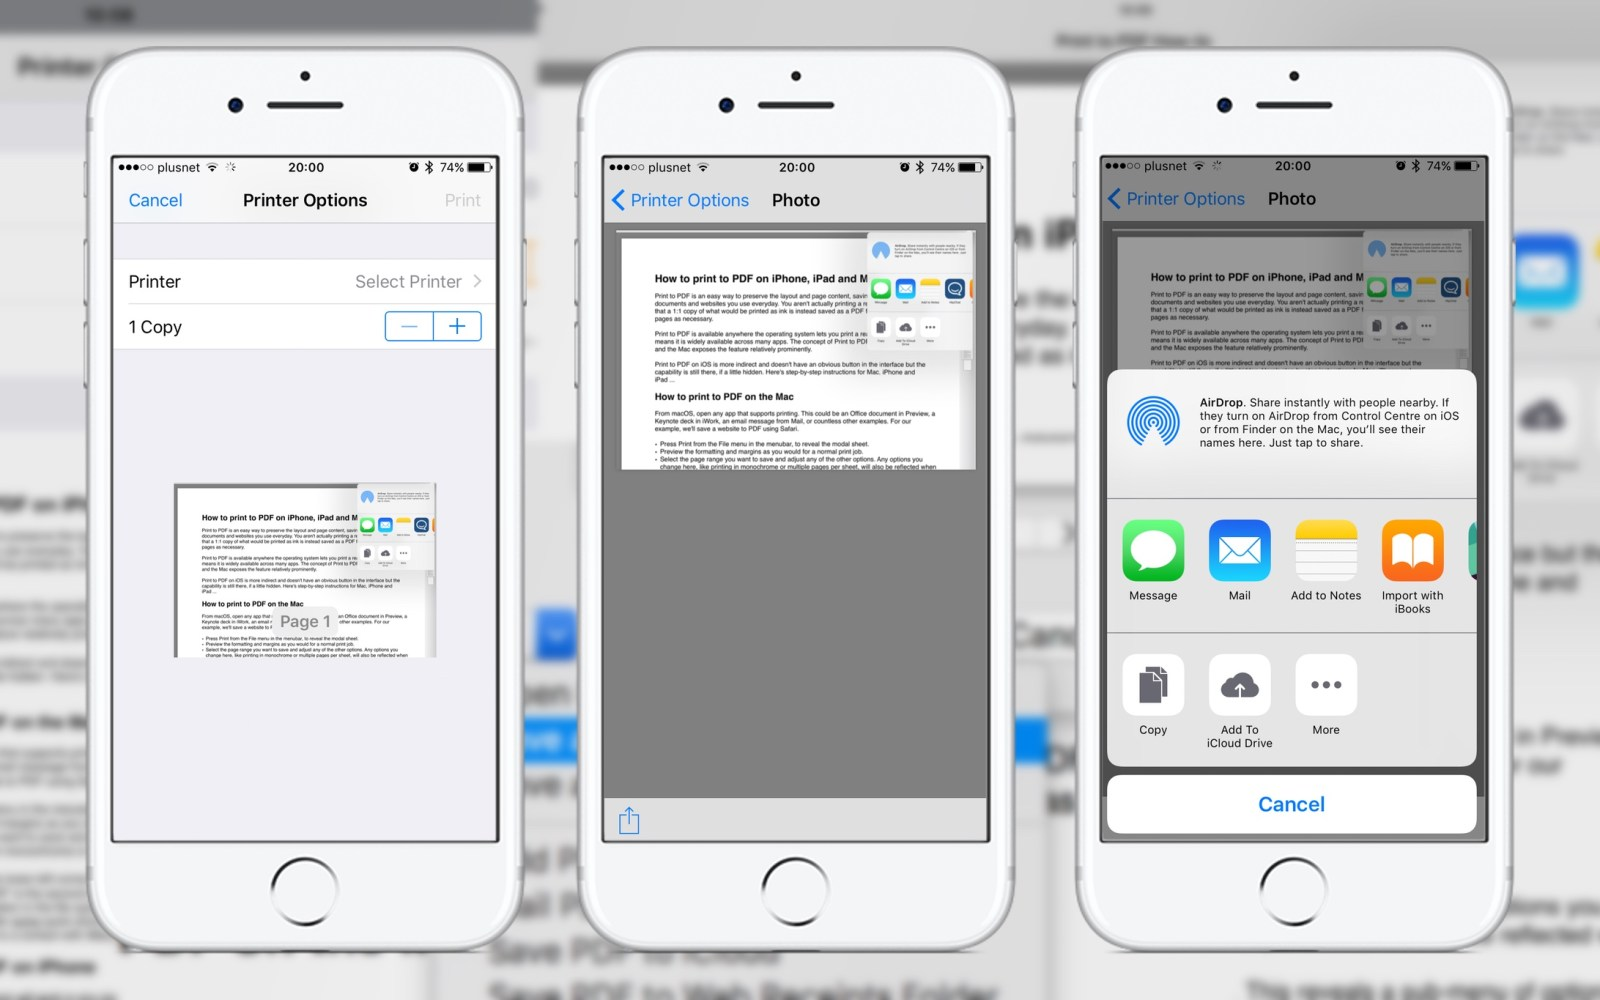 How to print to PDF on iPhone, iPad, and Mac